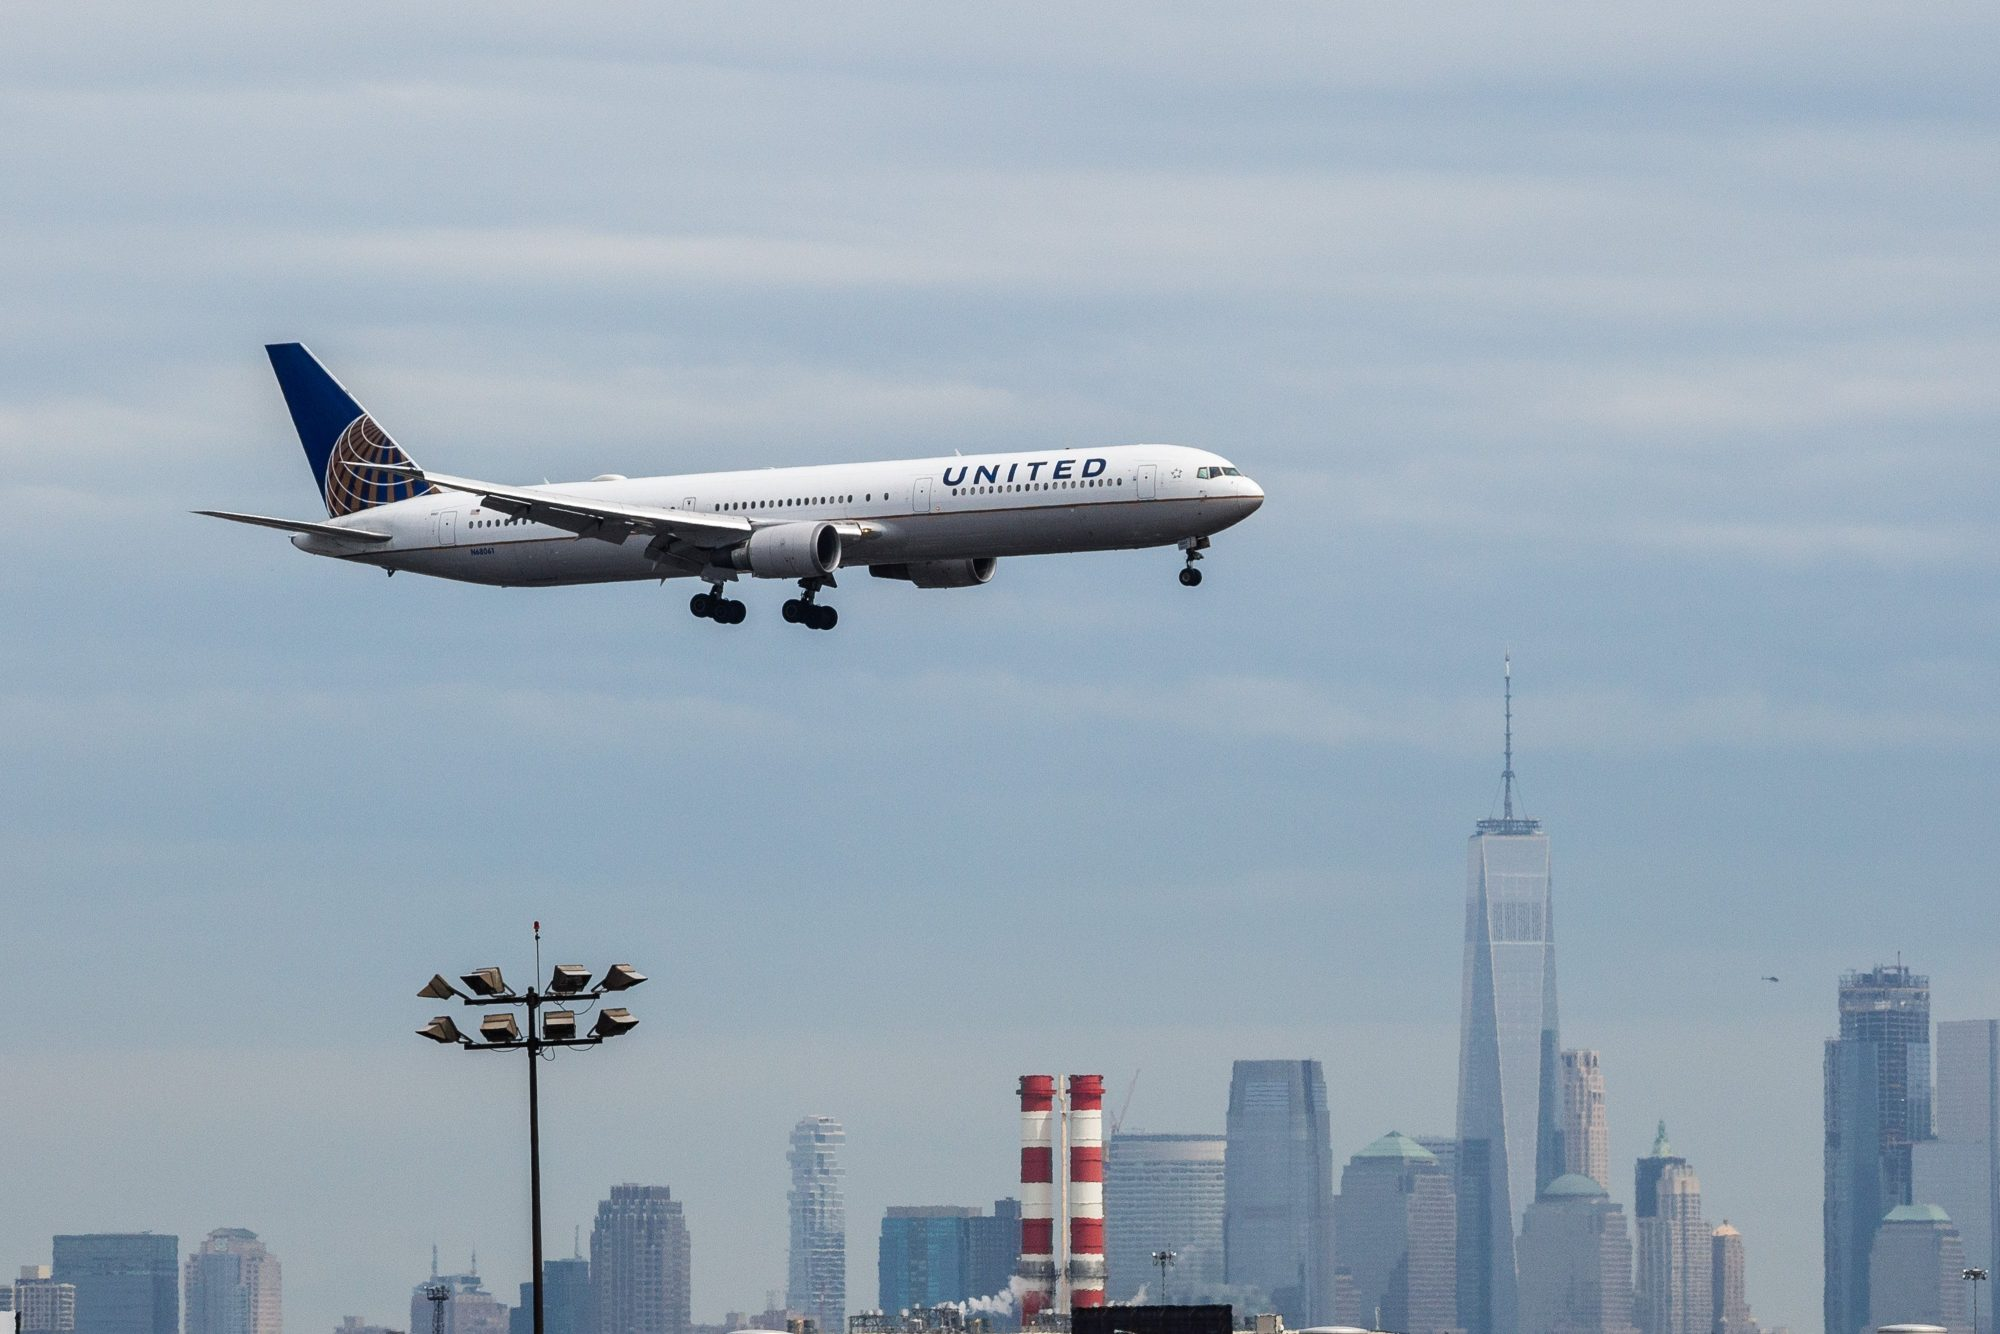 United Continental Holdings Inc. Operations After Passenger Forcibly Removed From Flight